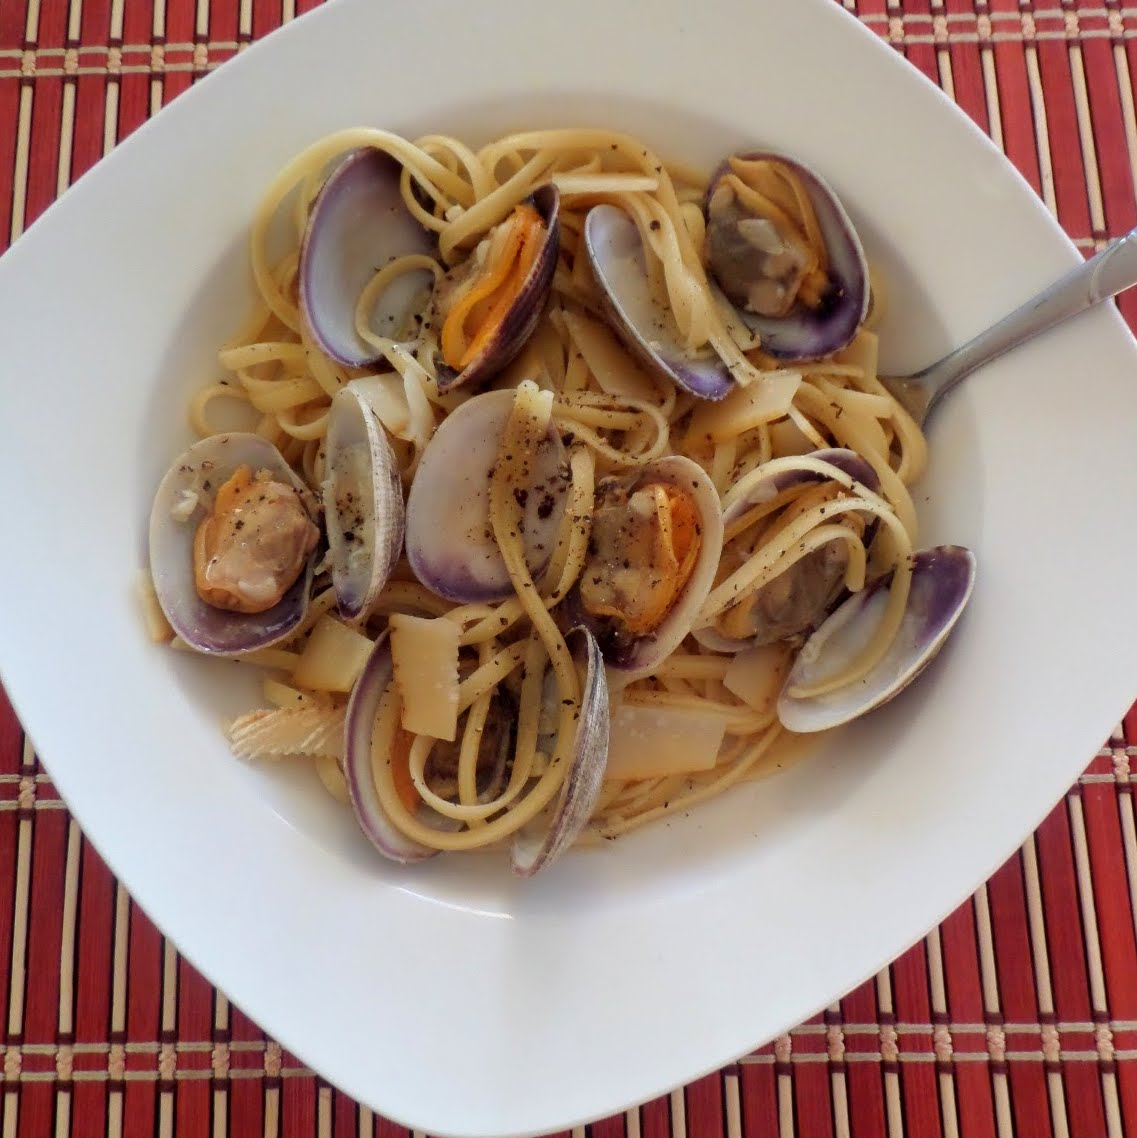 Clam Linguine:  Clams cooked in white wine sauce then tossed with linguine.  A delicious dinner that may look fancy but is really quite simple.